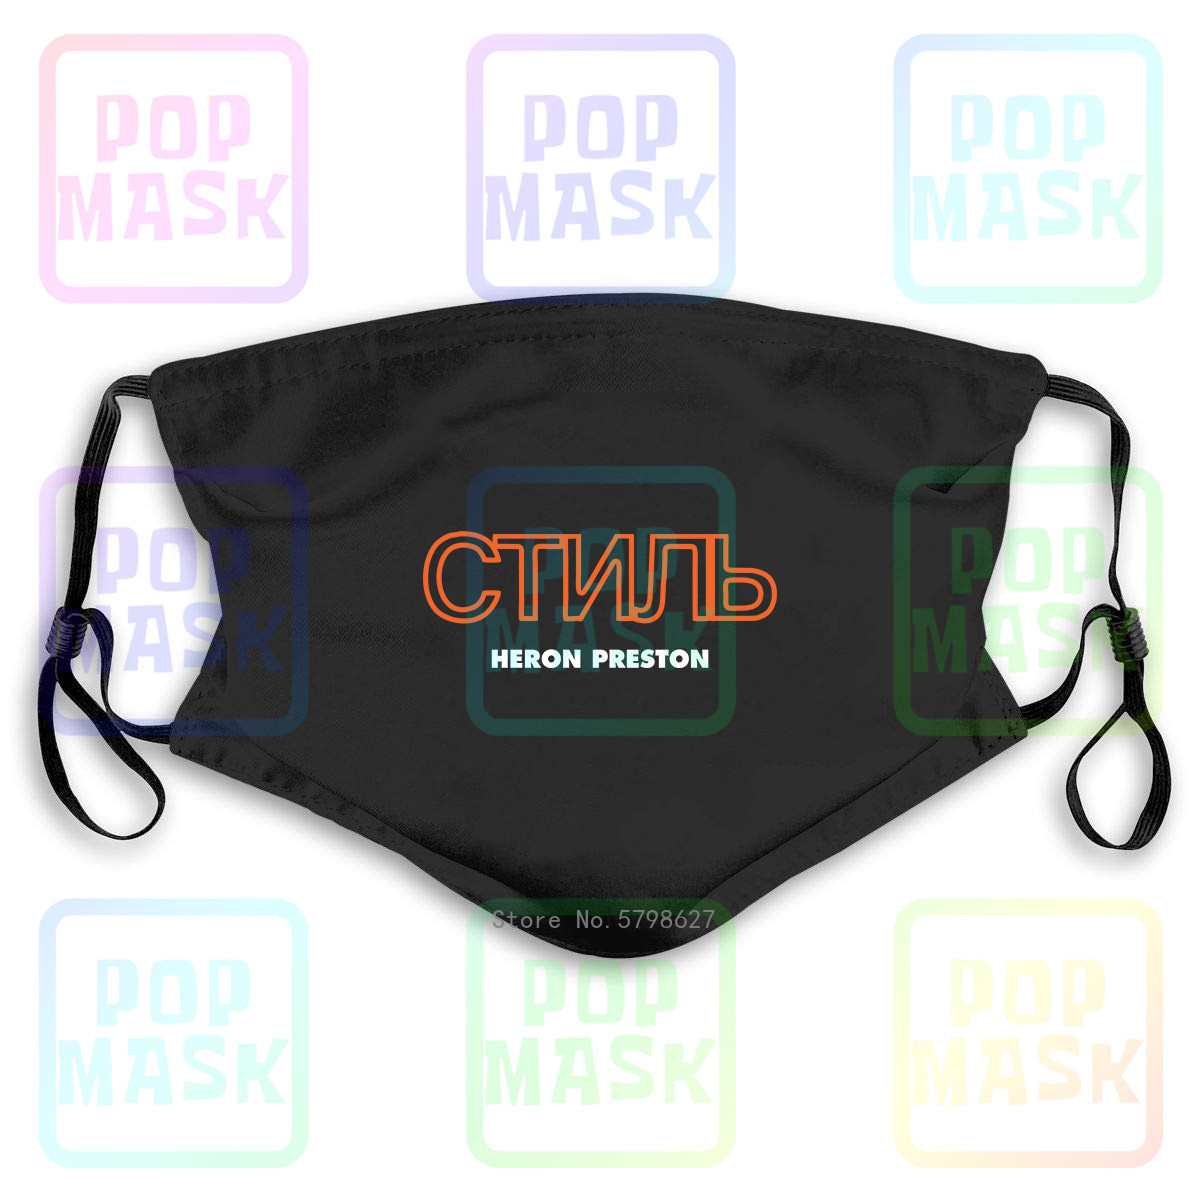 Heron Preston Classic Ctnmb Washable Reusable Mask With 2Pcs PM2.5 Filters 5 Layers